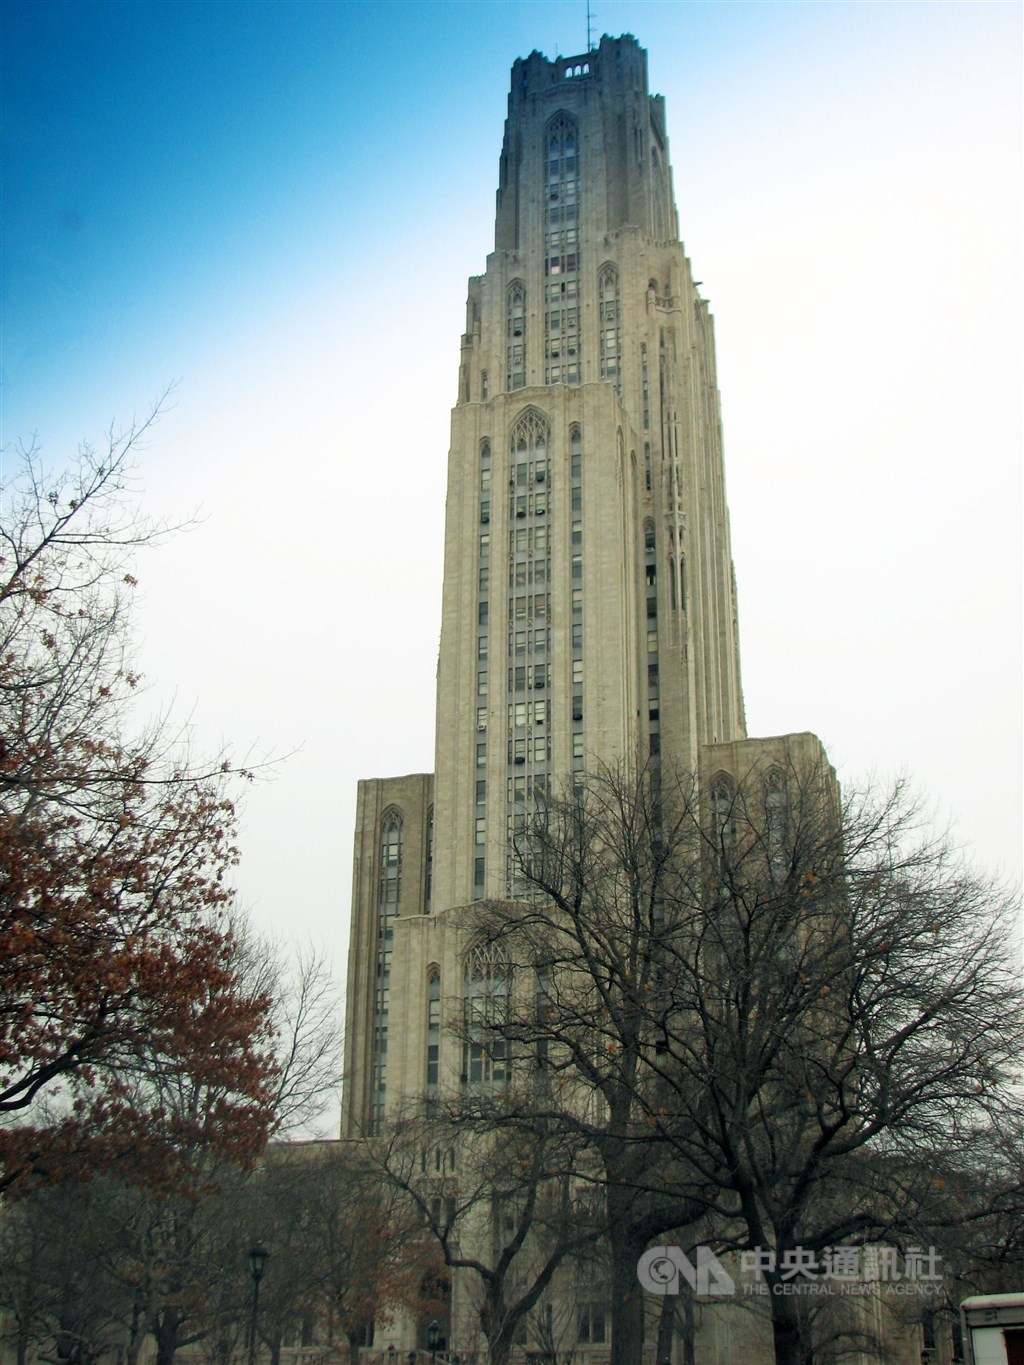 University of Pittsburgh. CNA file photo